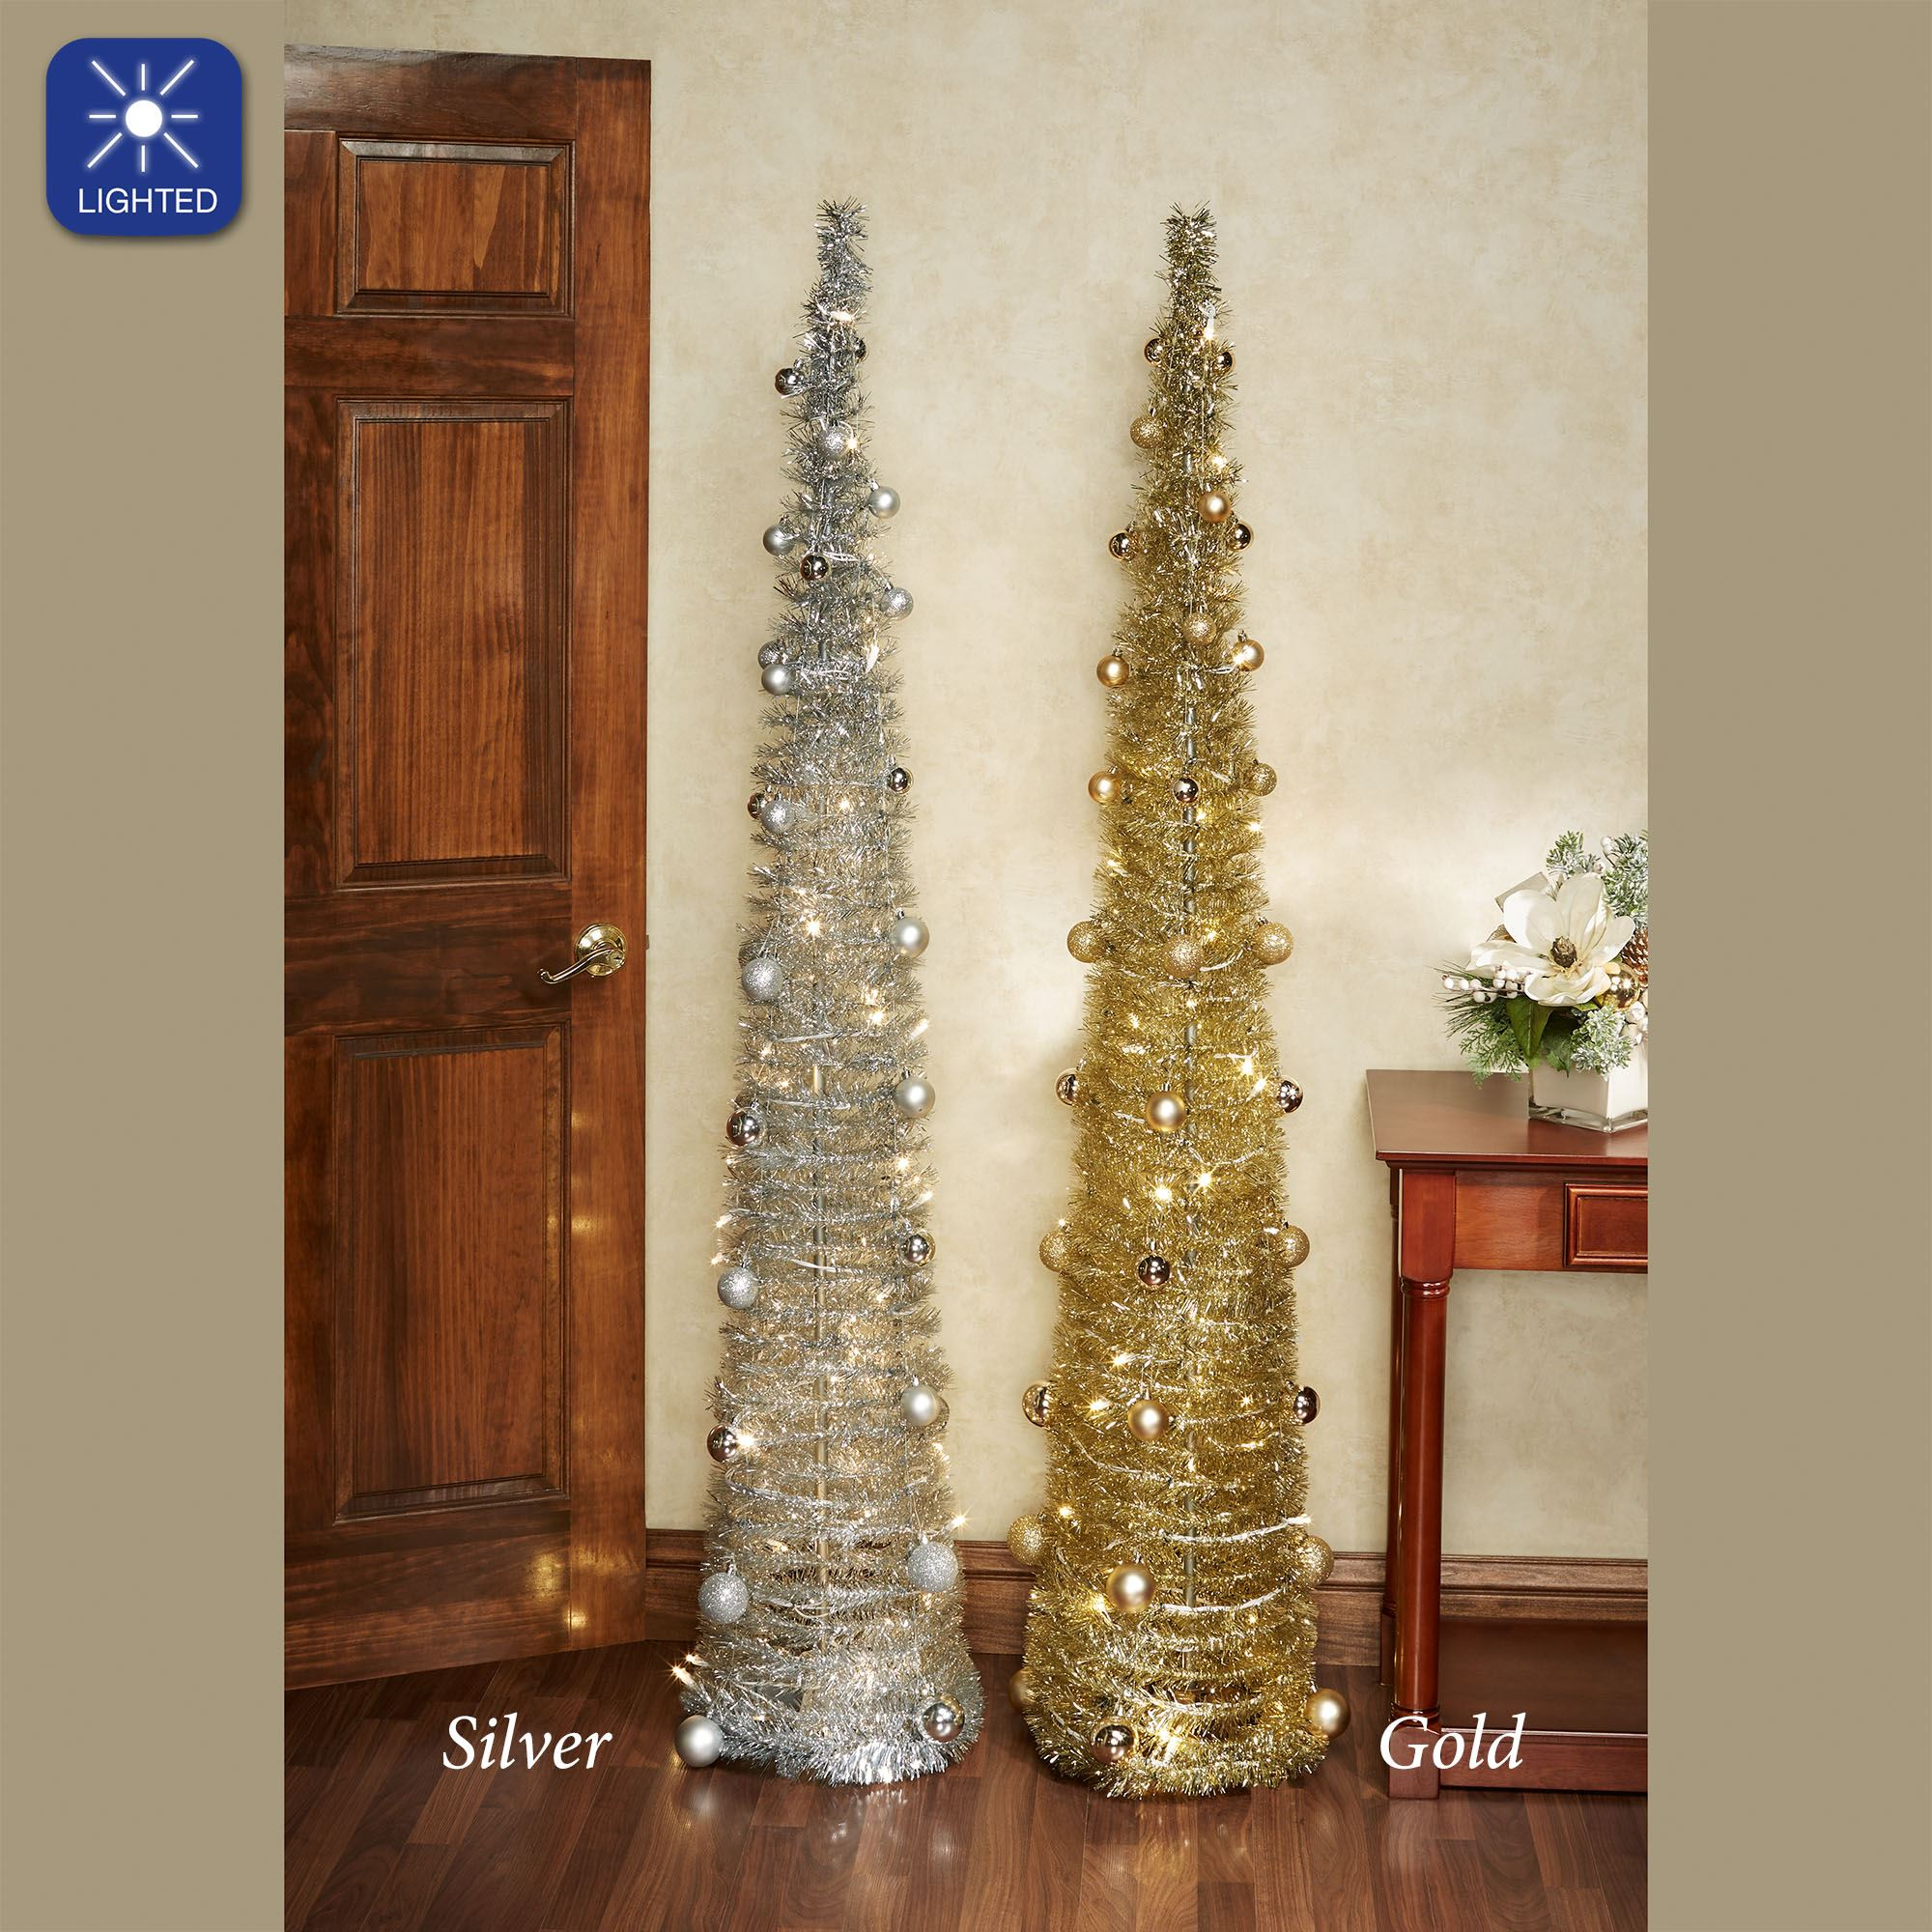 Collapsible Christmas Tree.Collapsible Lighted Slender Tinsel Christmas Tree With Ornaments